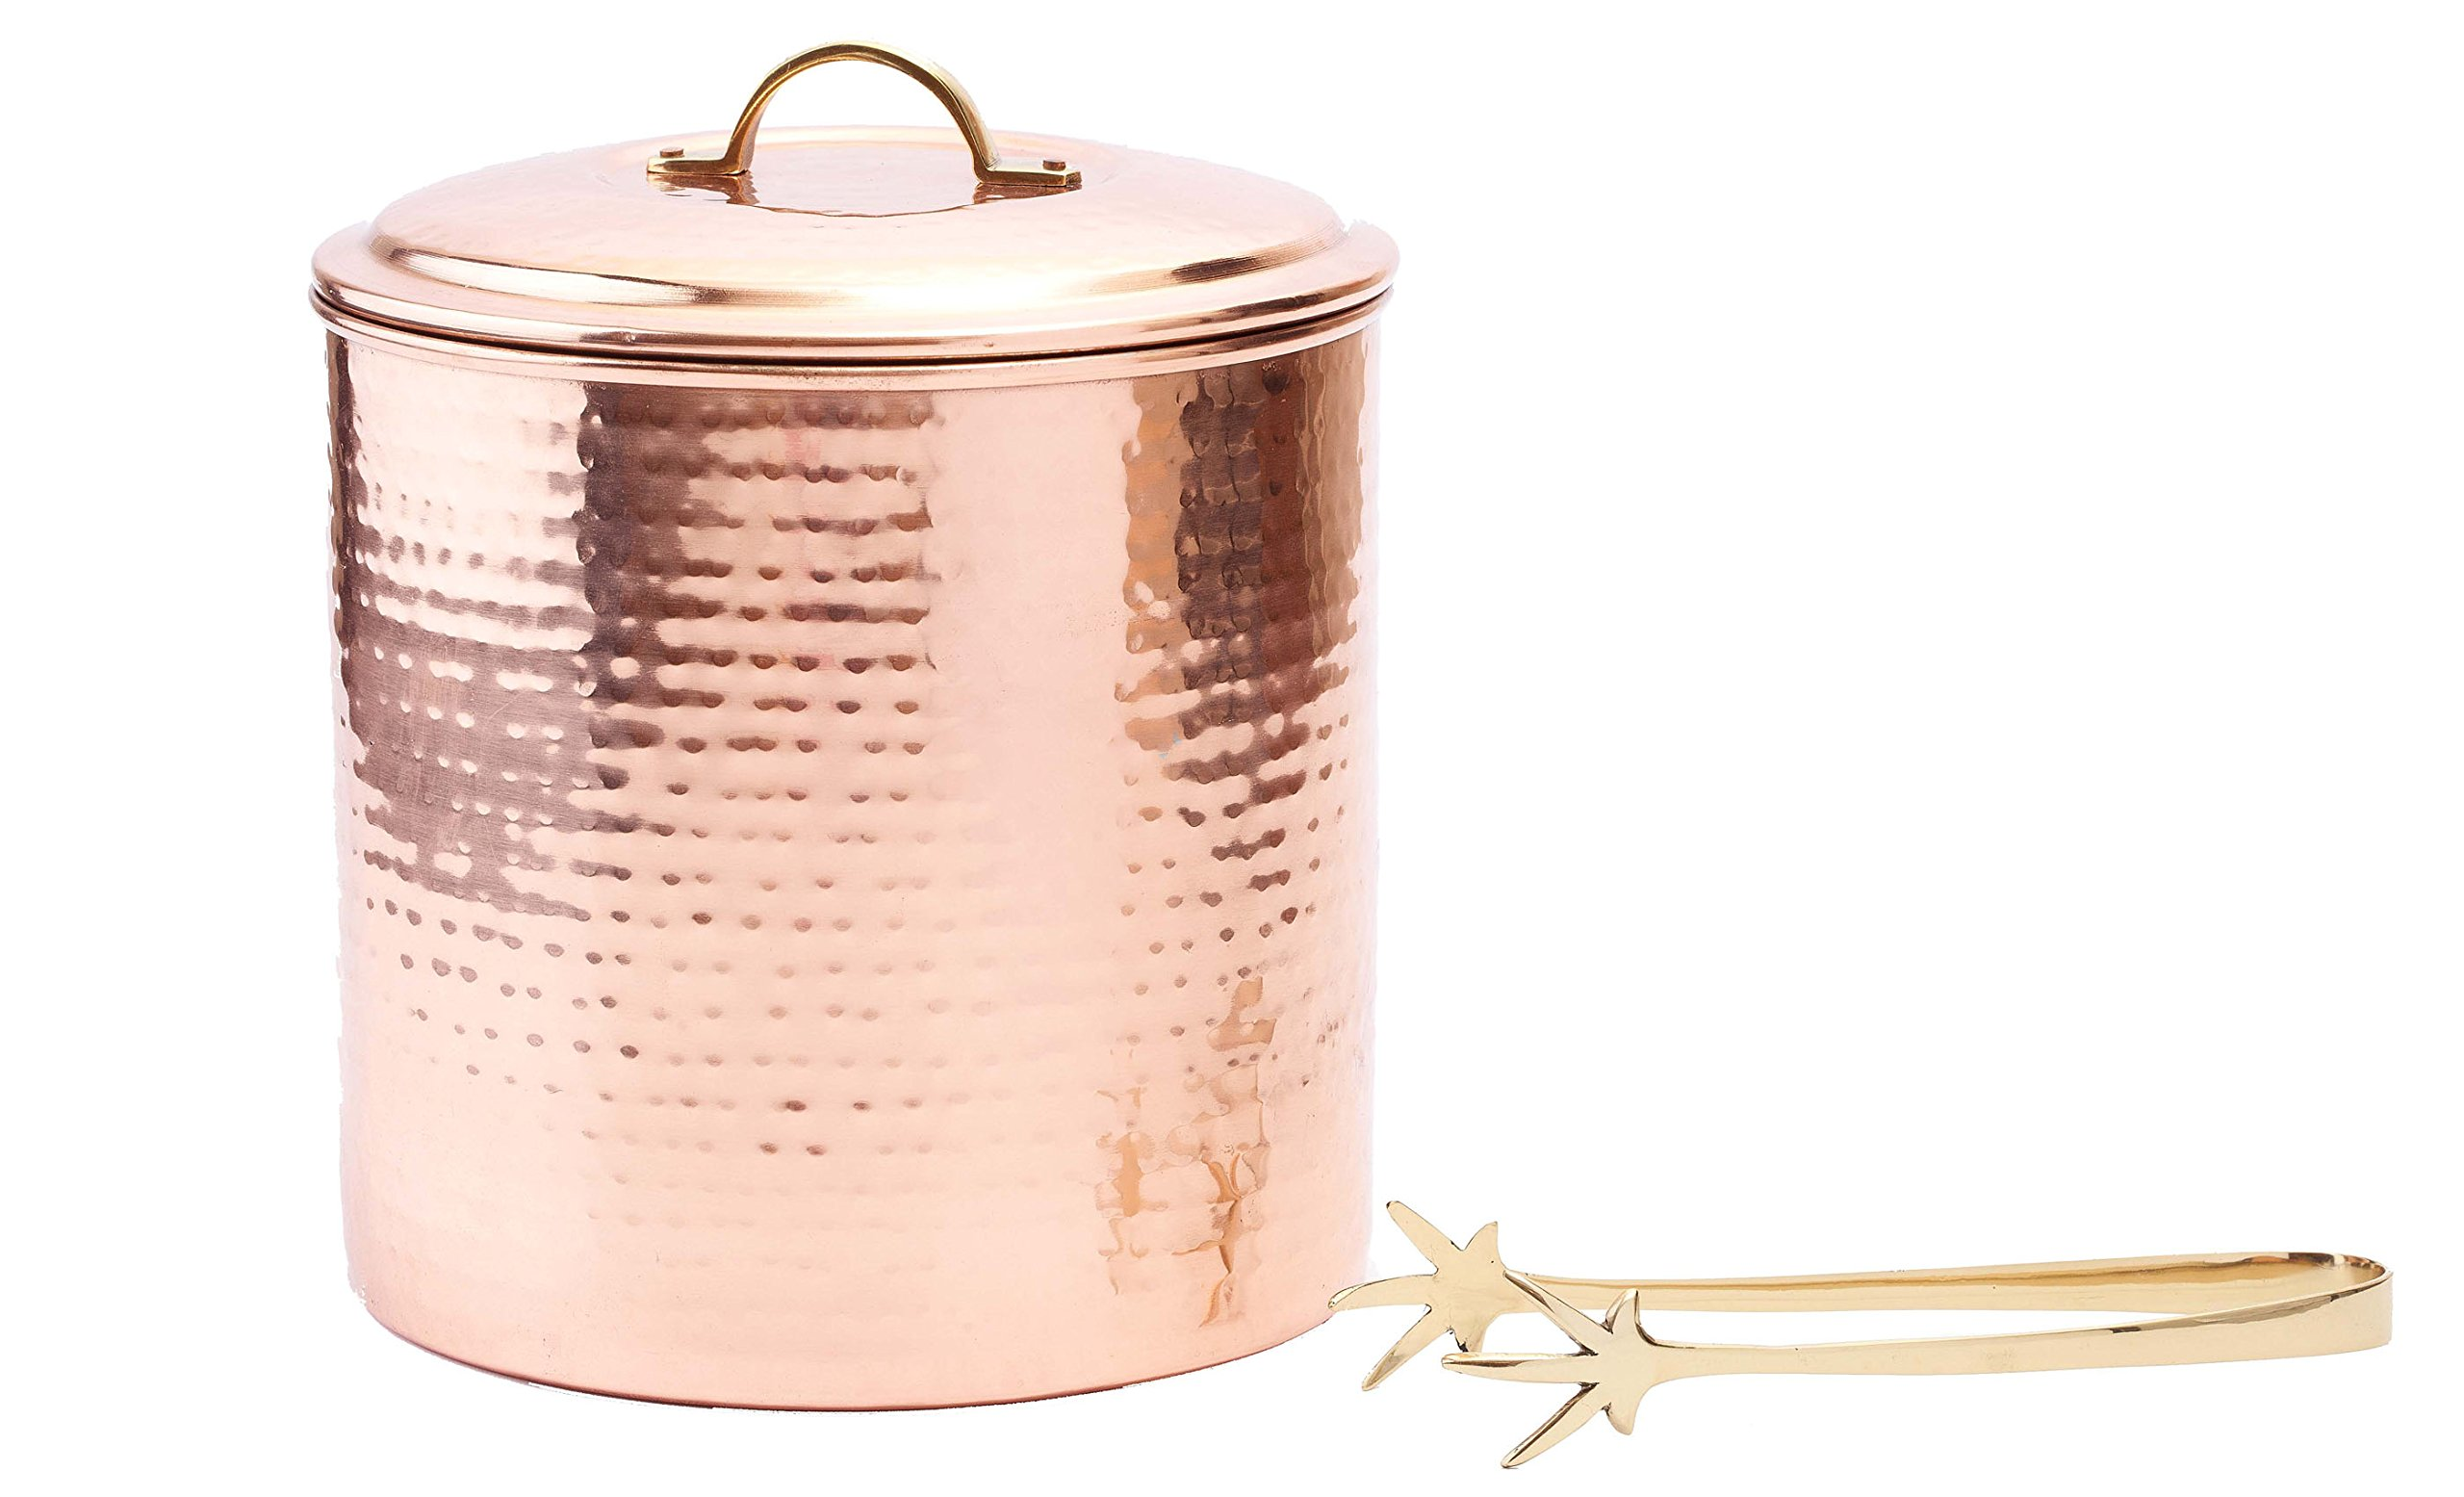 Old Dutch International 876 Old Dutch Ice Bucket, 3 quart, Copper by Old Dutch (Image #1)